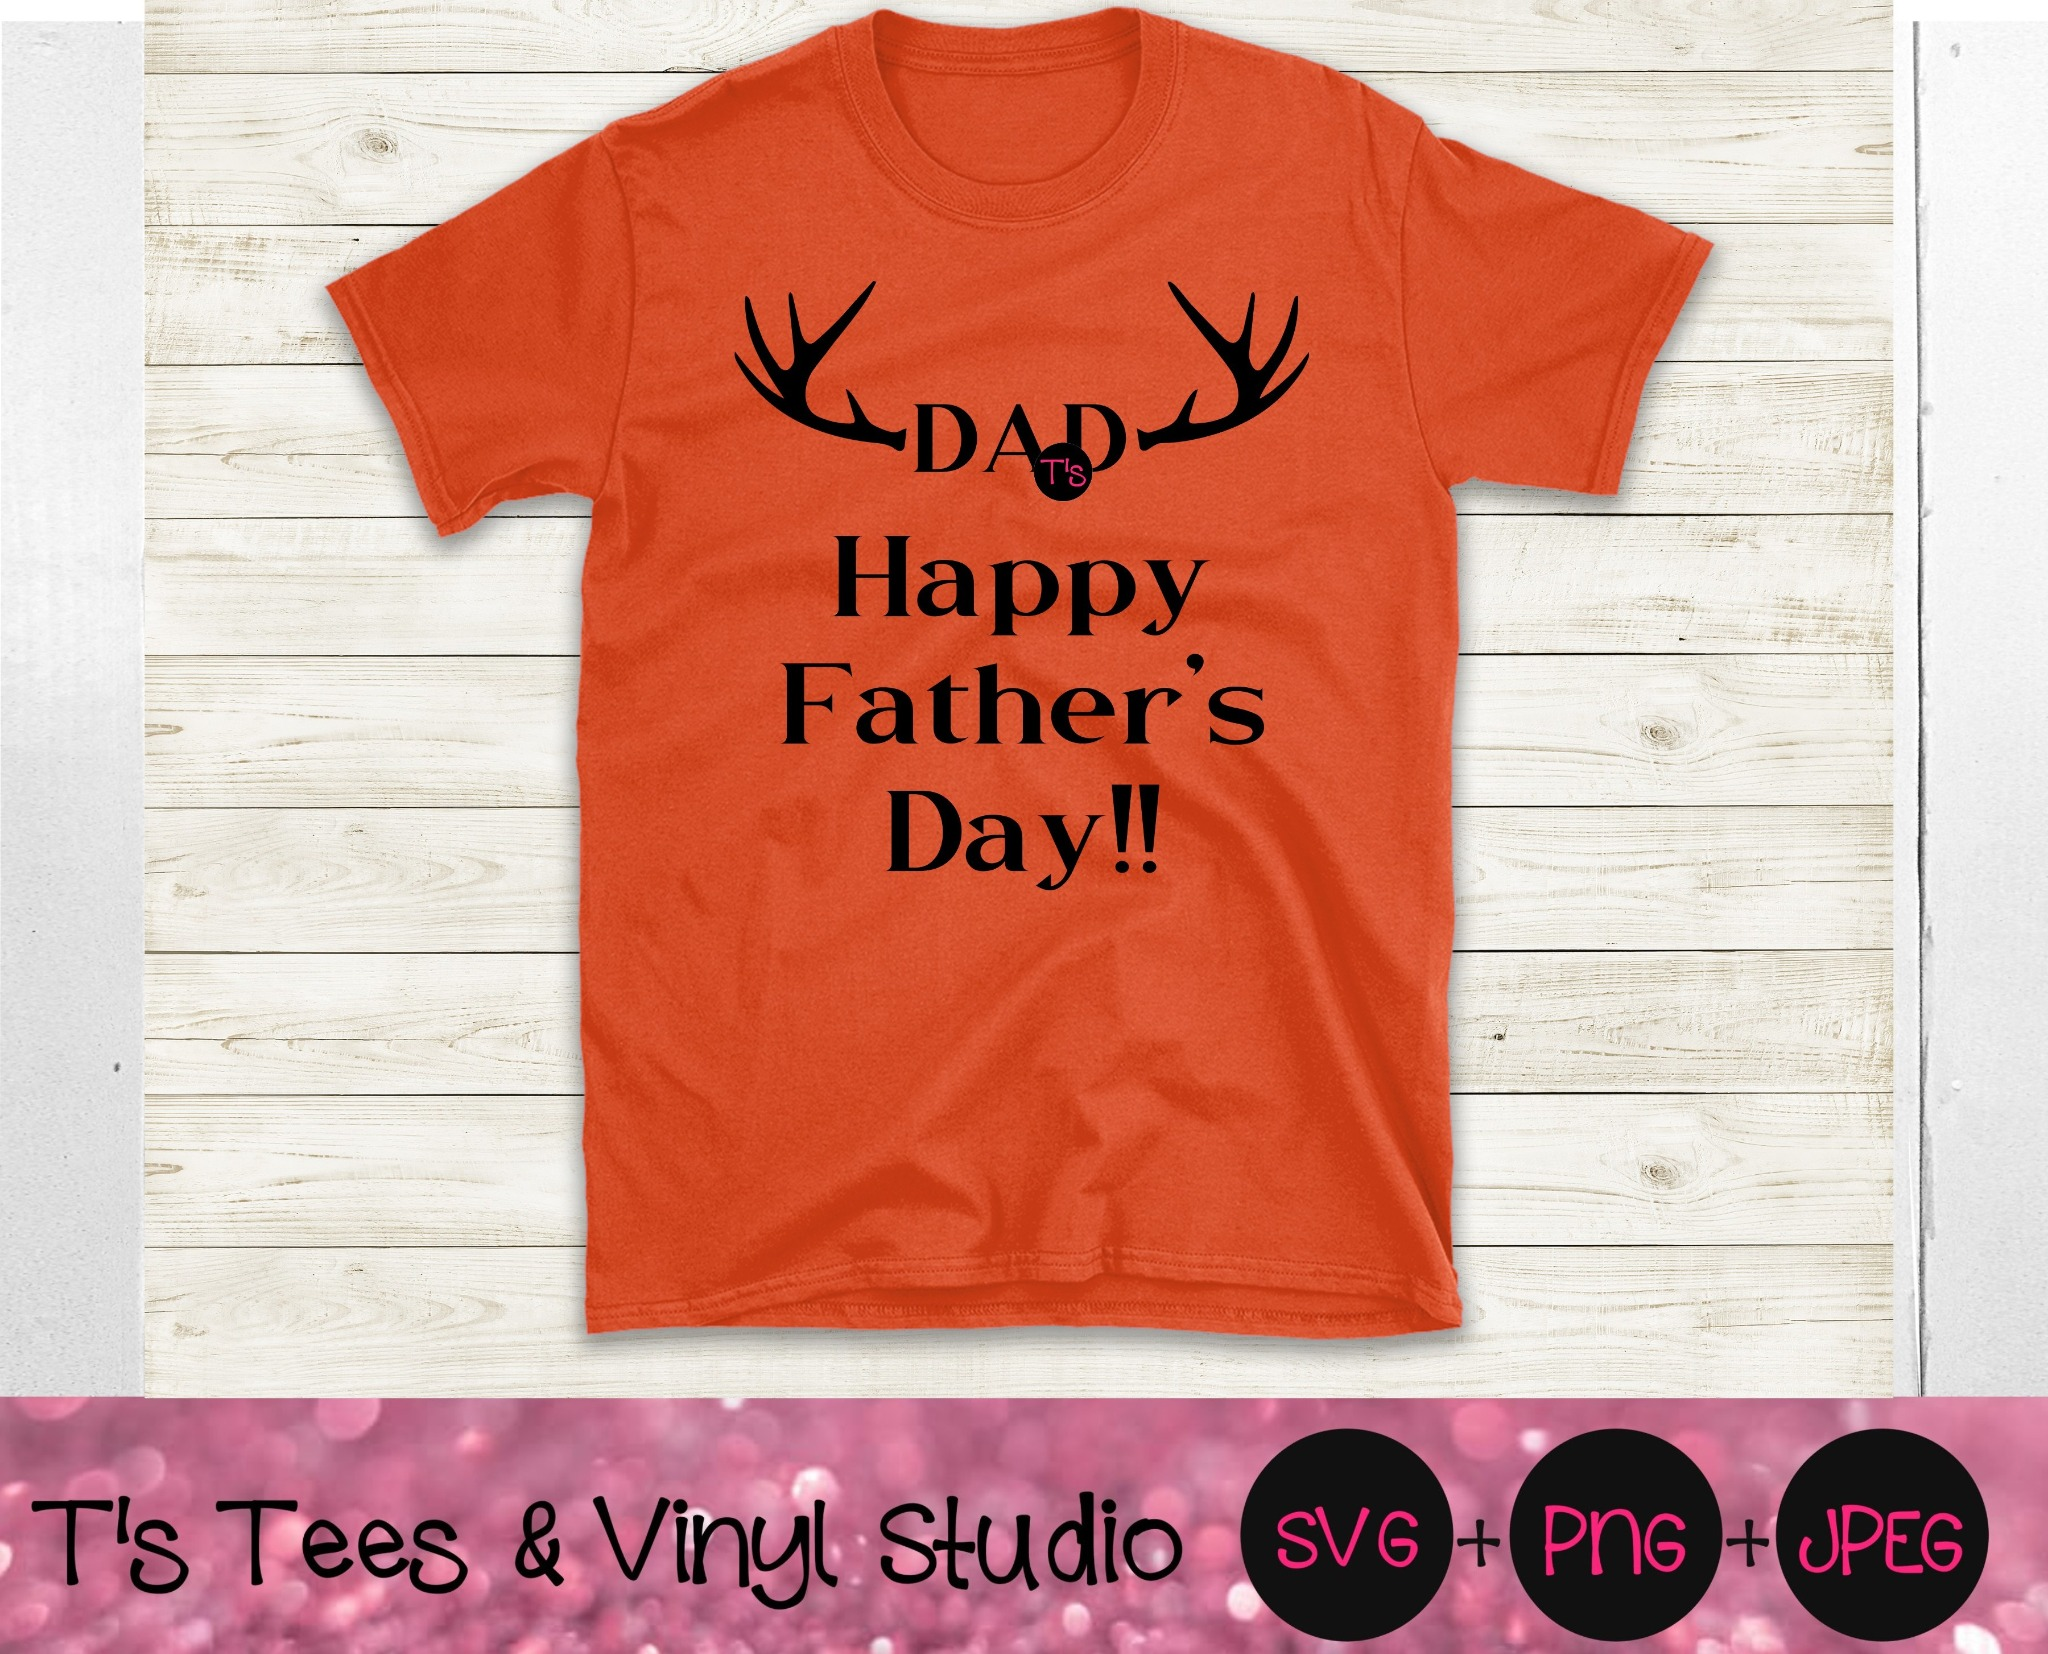 Dad Svg, Father's Day Svg, Happy Father's Day Svg, Antlers Svg, Best Dad Ever Svg, Best Dad Svg